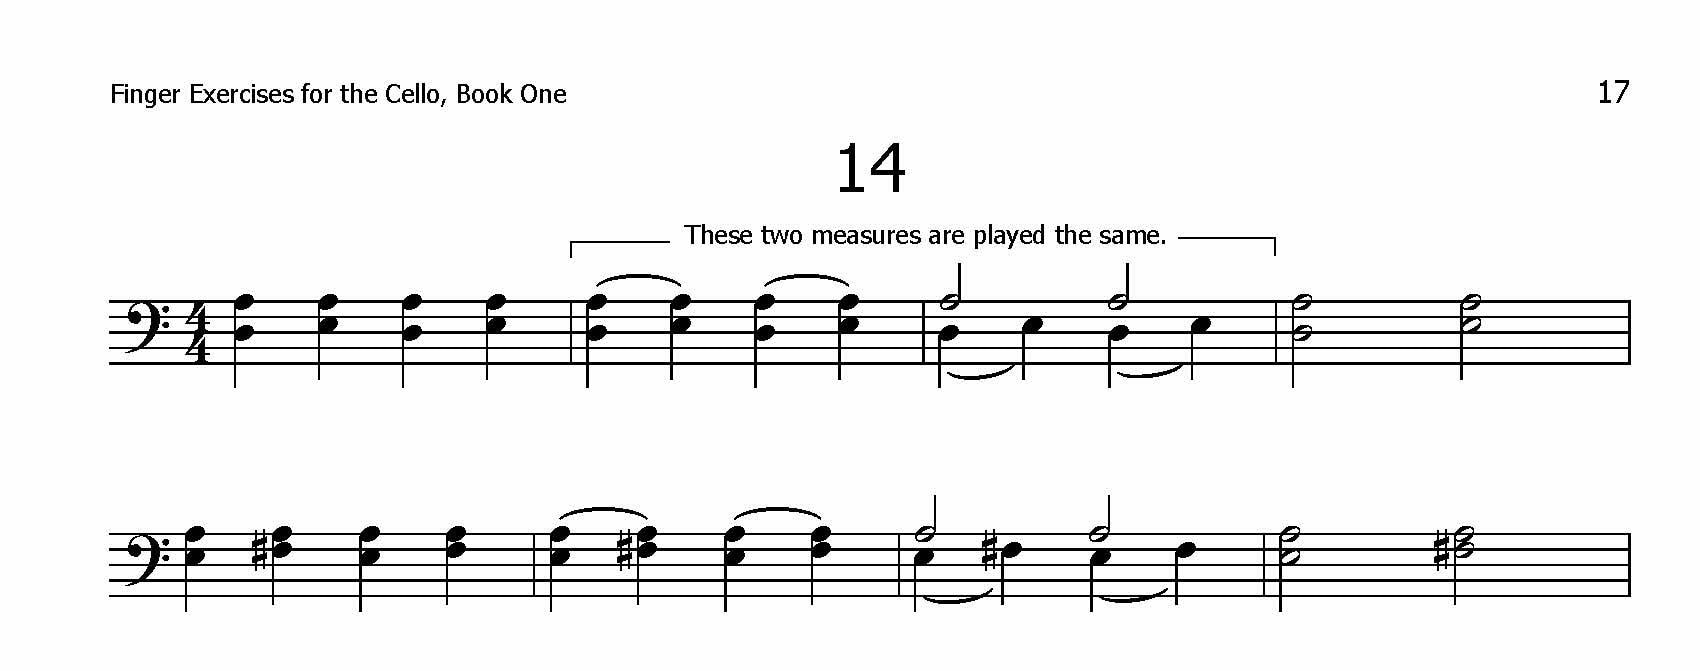 Finger Exercises for the Cello, Book One Page 14 Excerpt